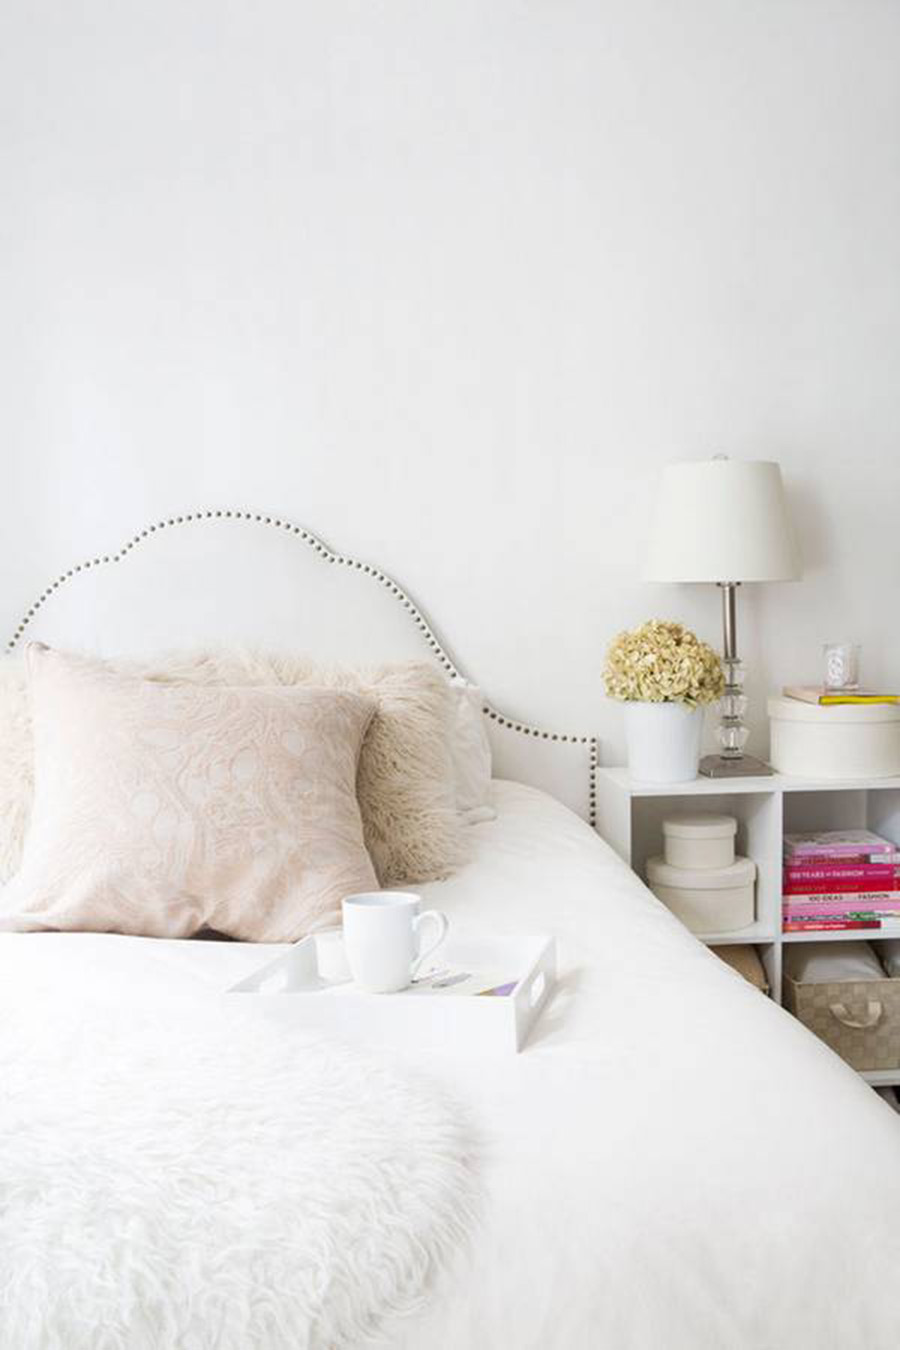 Fresh White Bedroom Inspiration, Home Tour on A Side Of Vogue